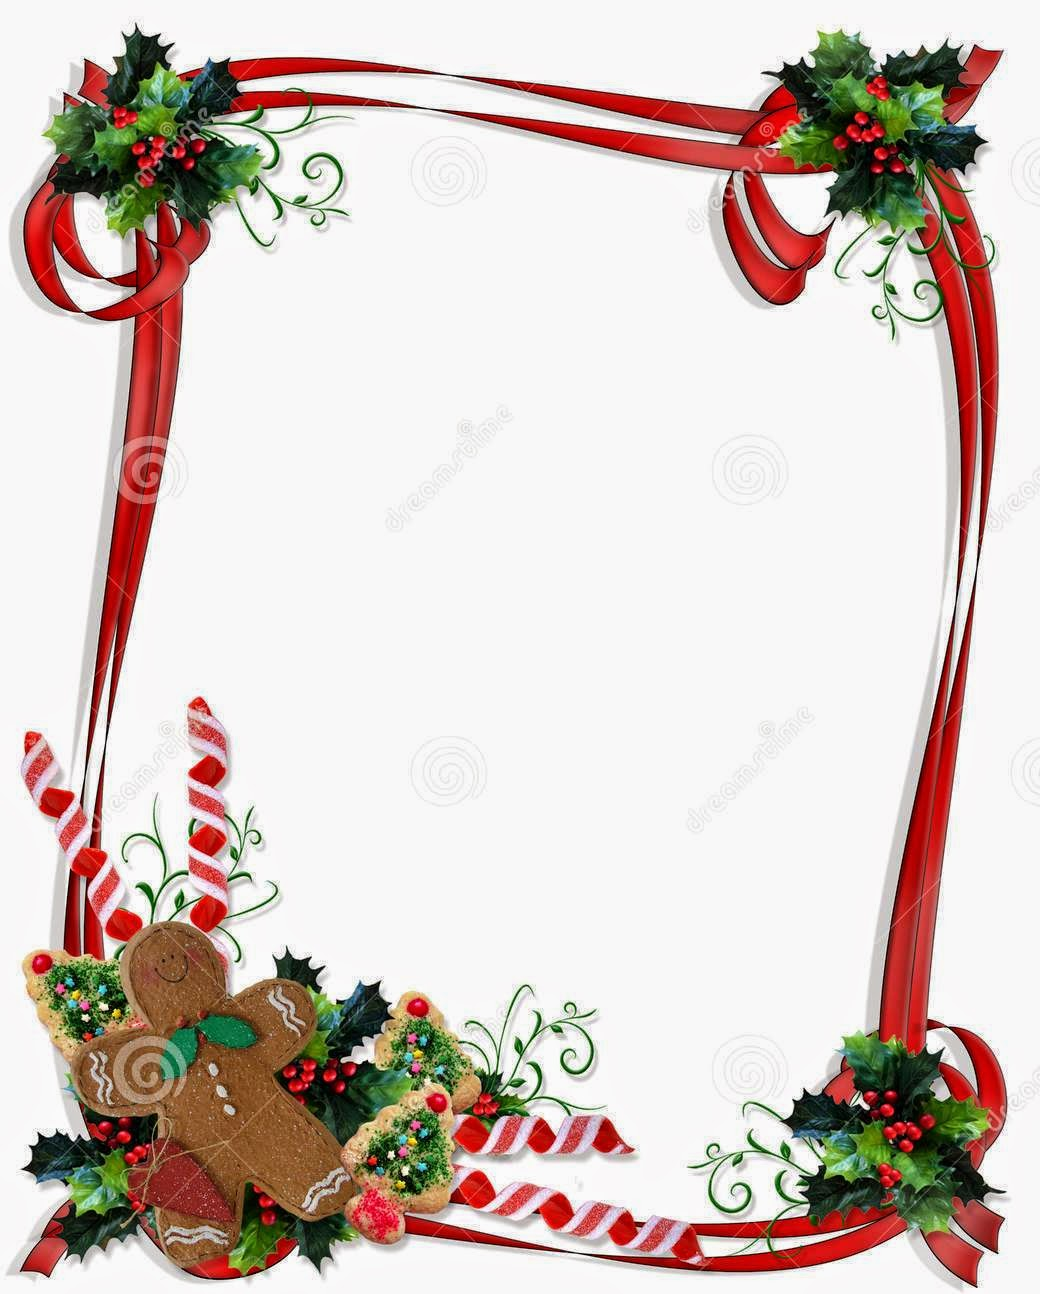 Free Religious Christmas Border Clipart 20 Free Cliparts